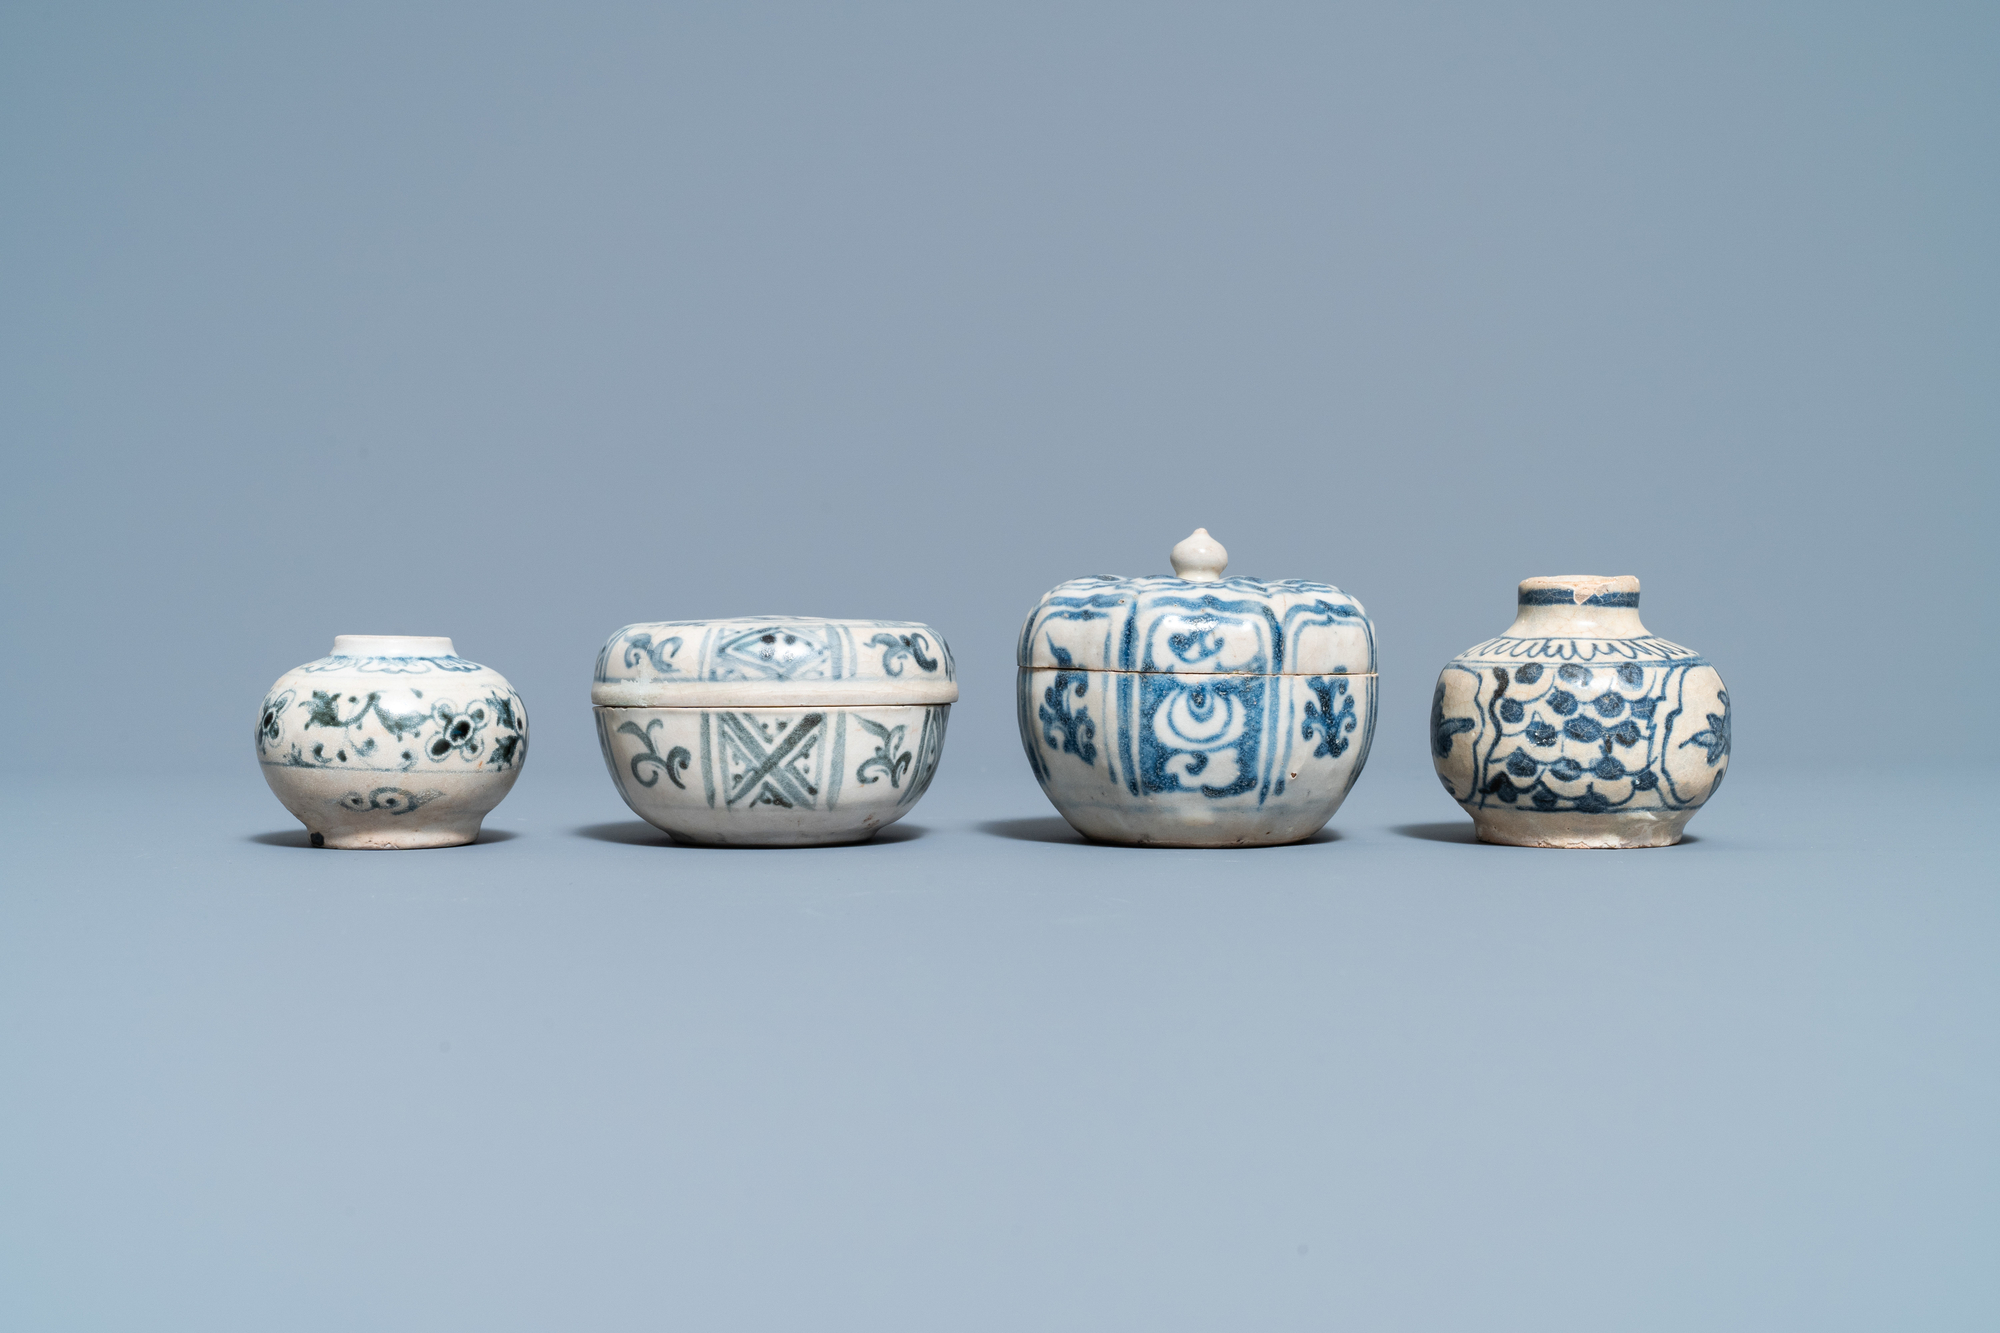 Four blue and white Vietnamese or Annamese ceramics and a Chinese jarlet, 15/16th C. - Image 8 of 12